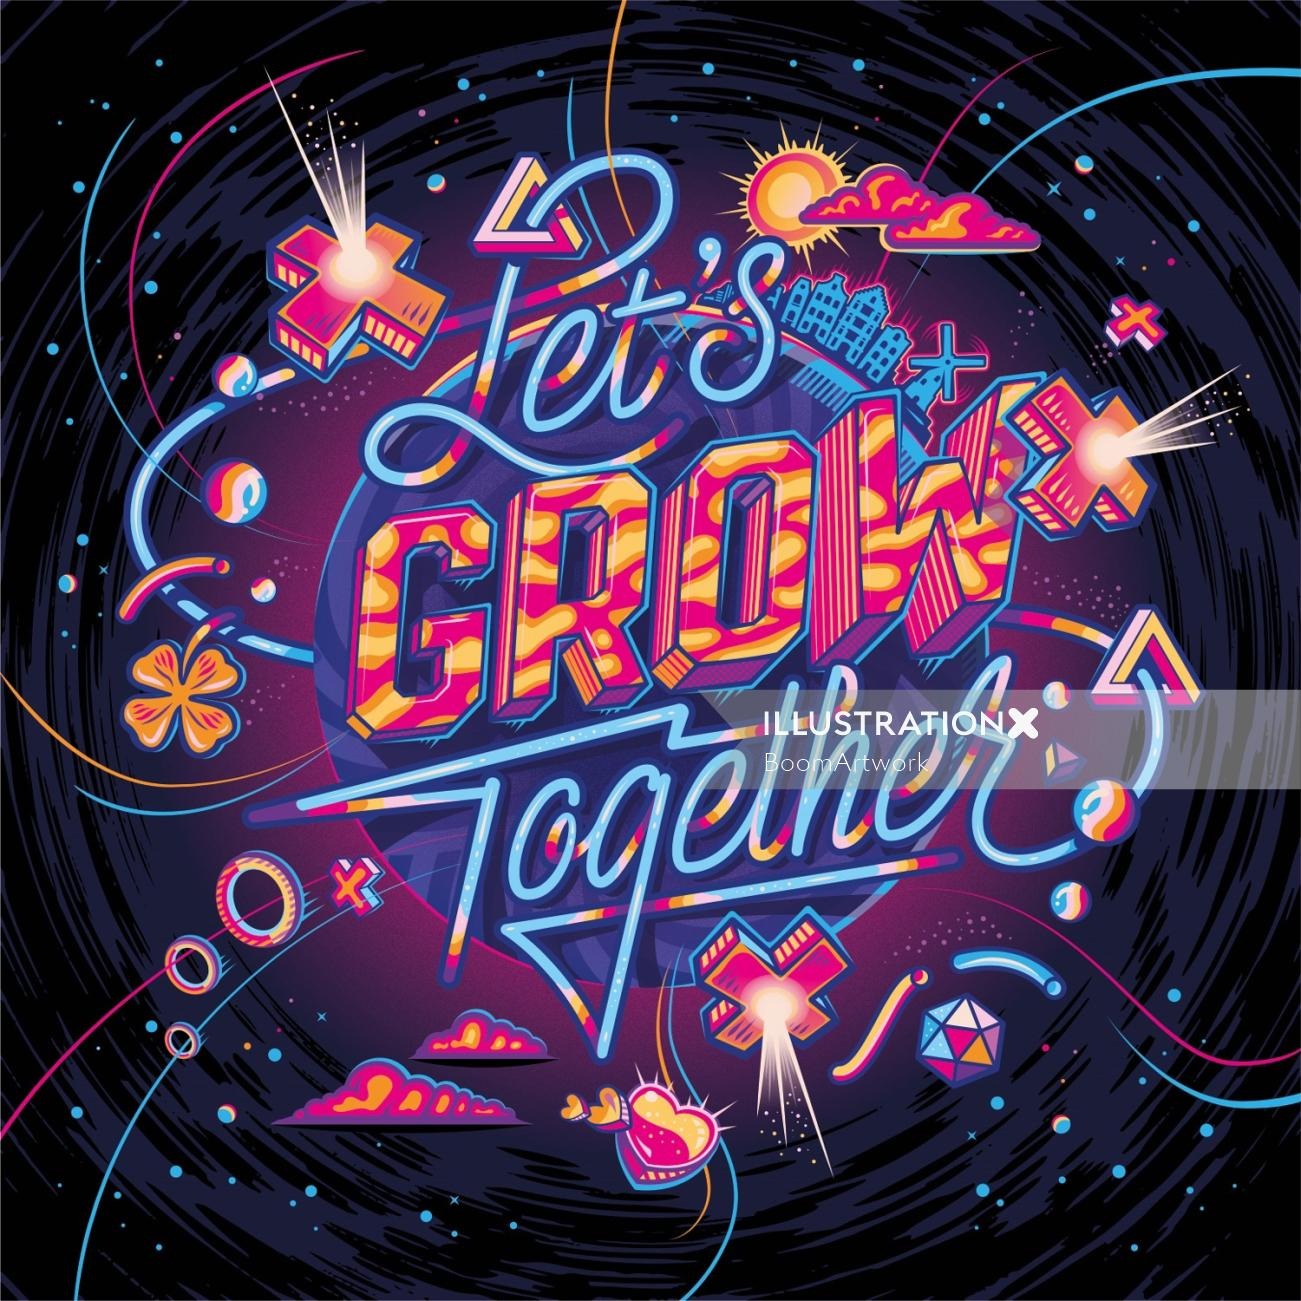 Let's Grow Together Lettering illustration